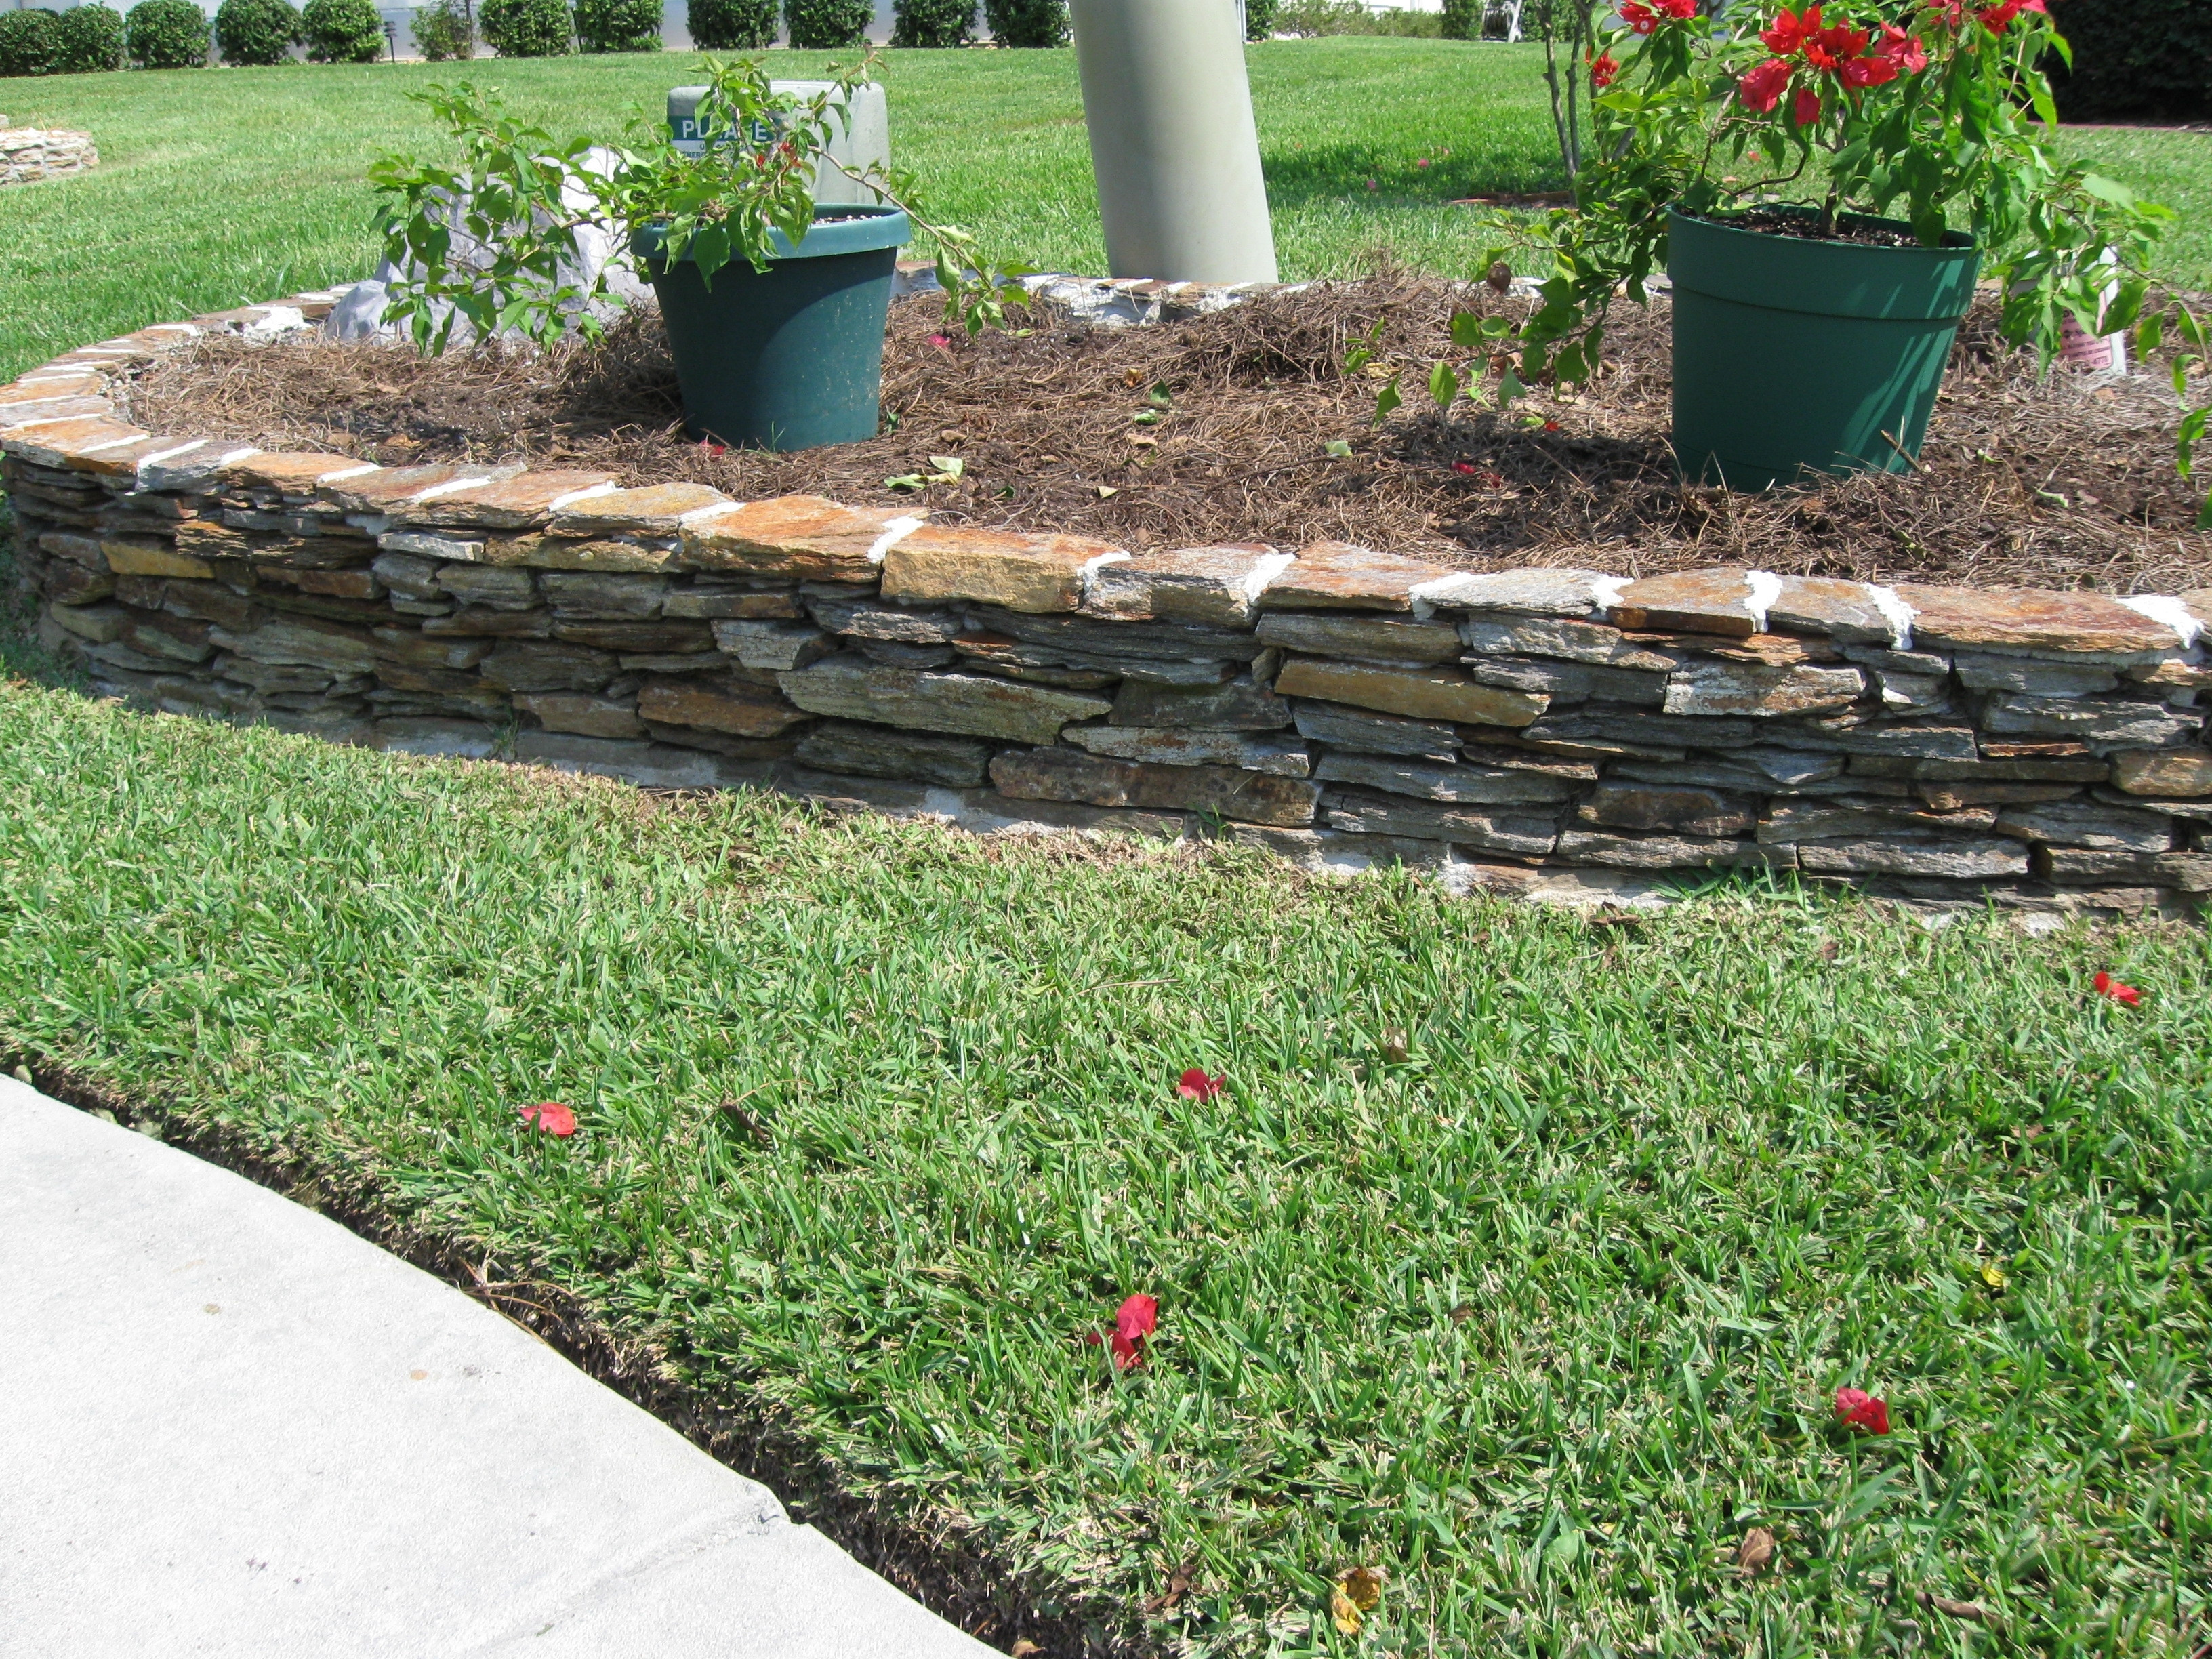 Best ideas about Landscape Edging Stones . Save or Pin Design Landscape Edging Borders — Bistrodre Porch and Now.